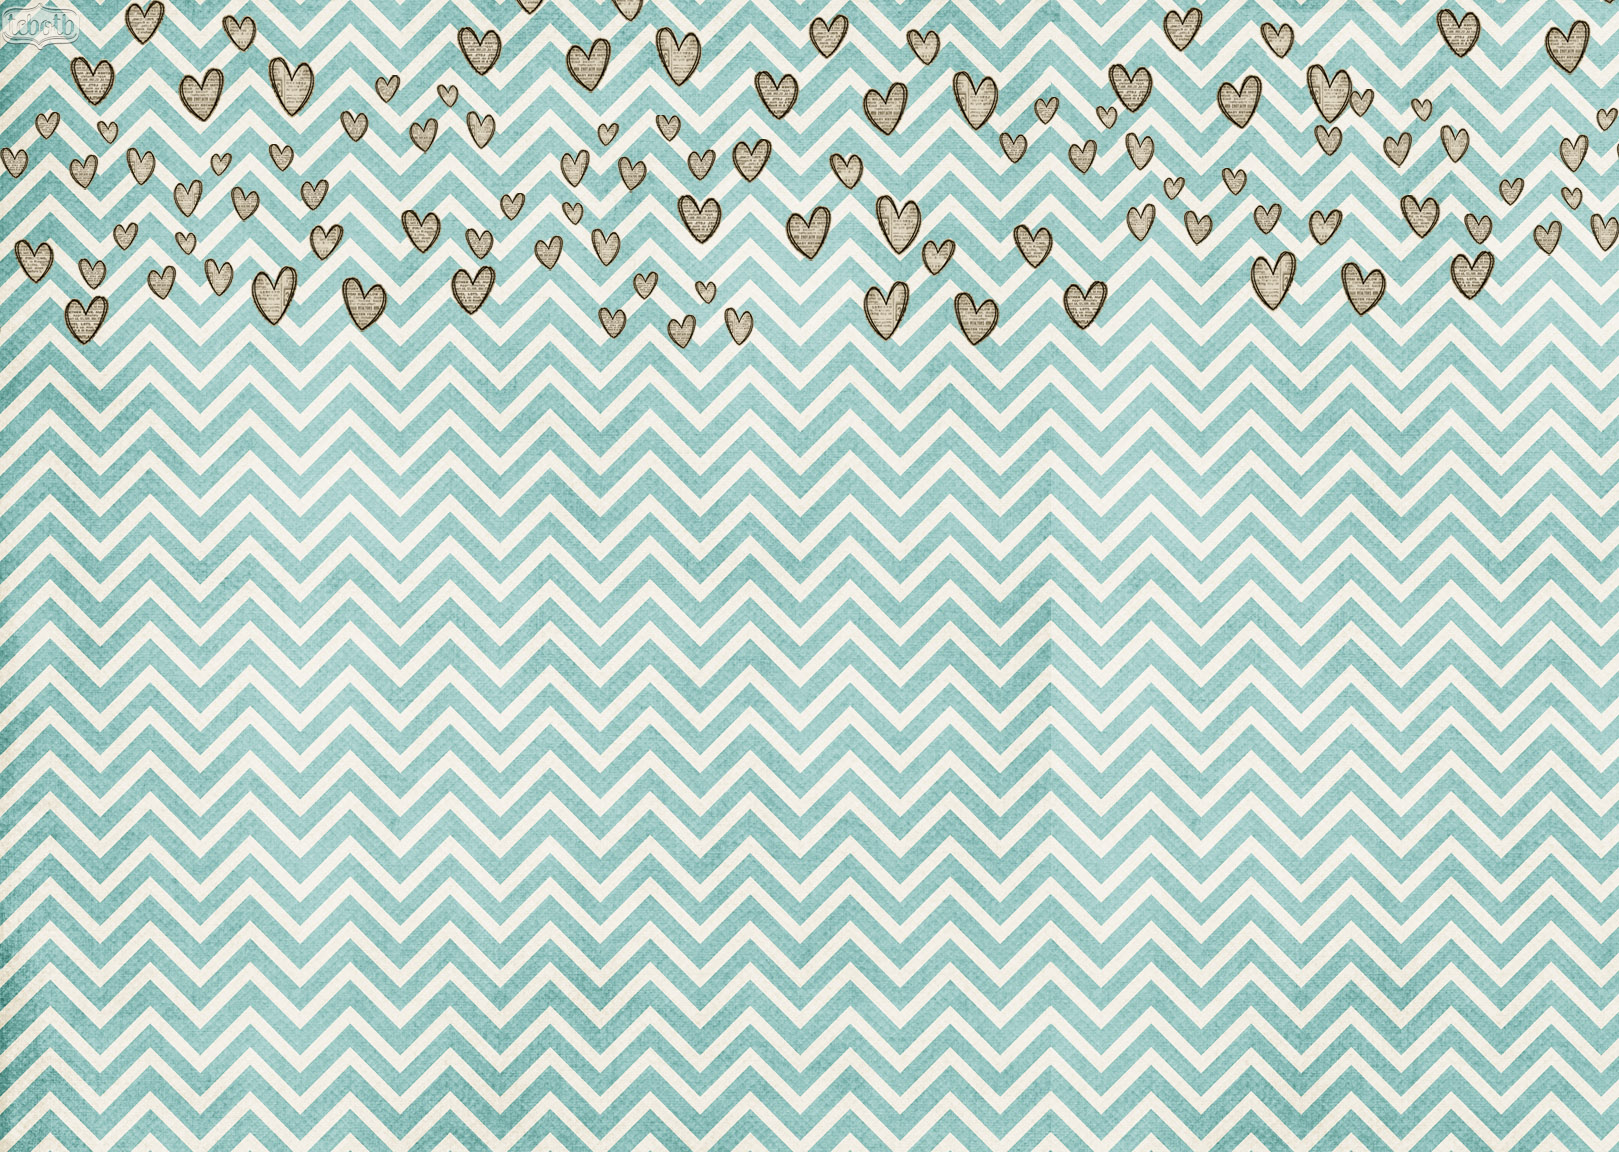 Heart U Twitter Background The Cutest Blog On The Block 1619x1152